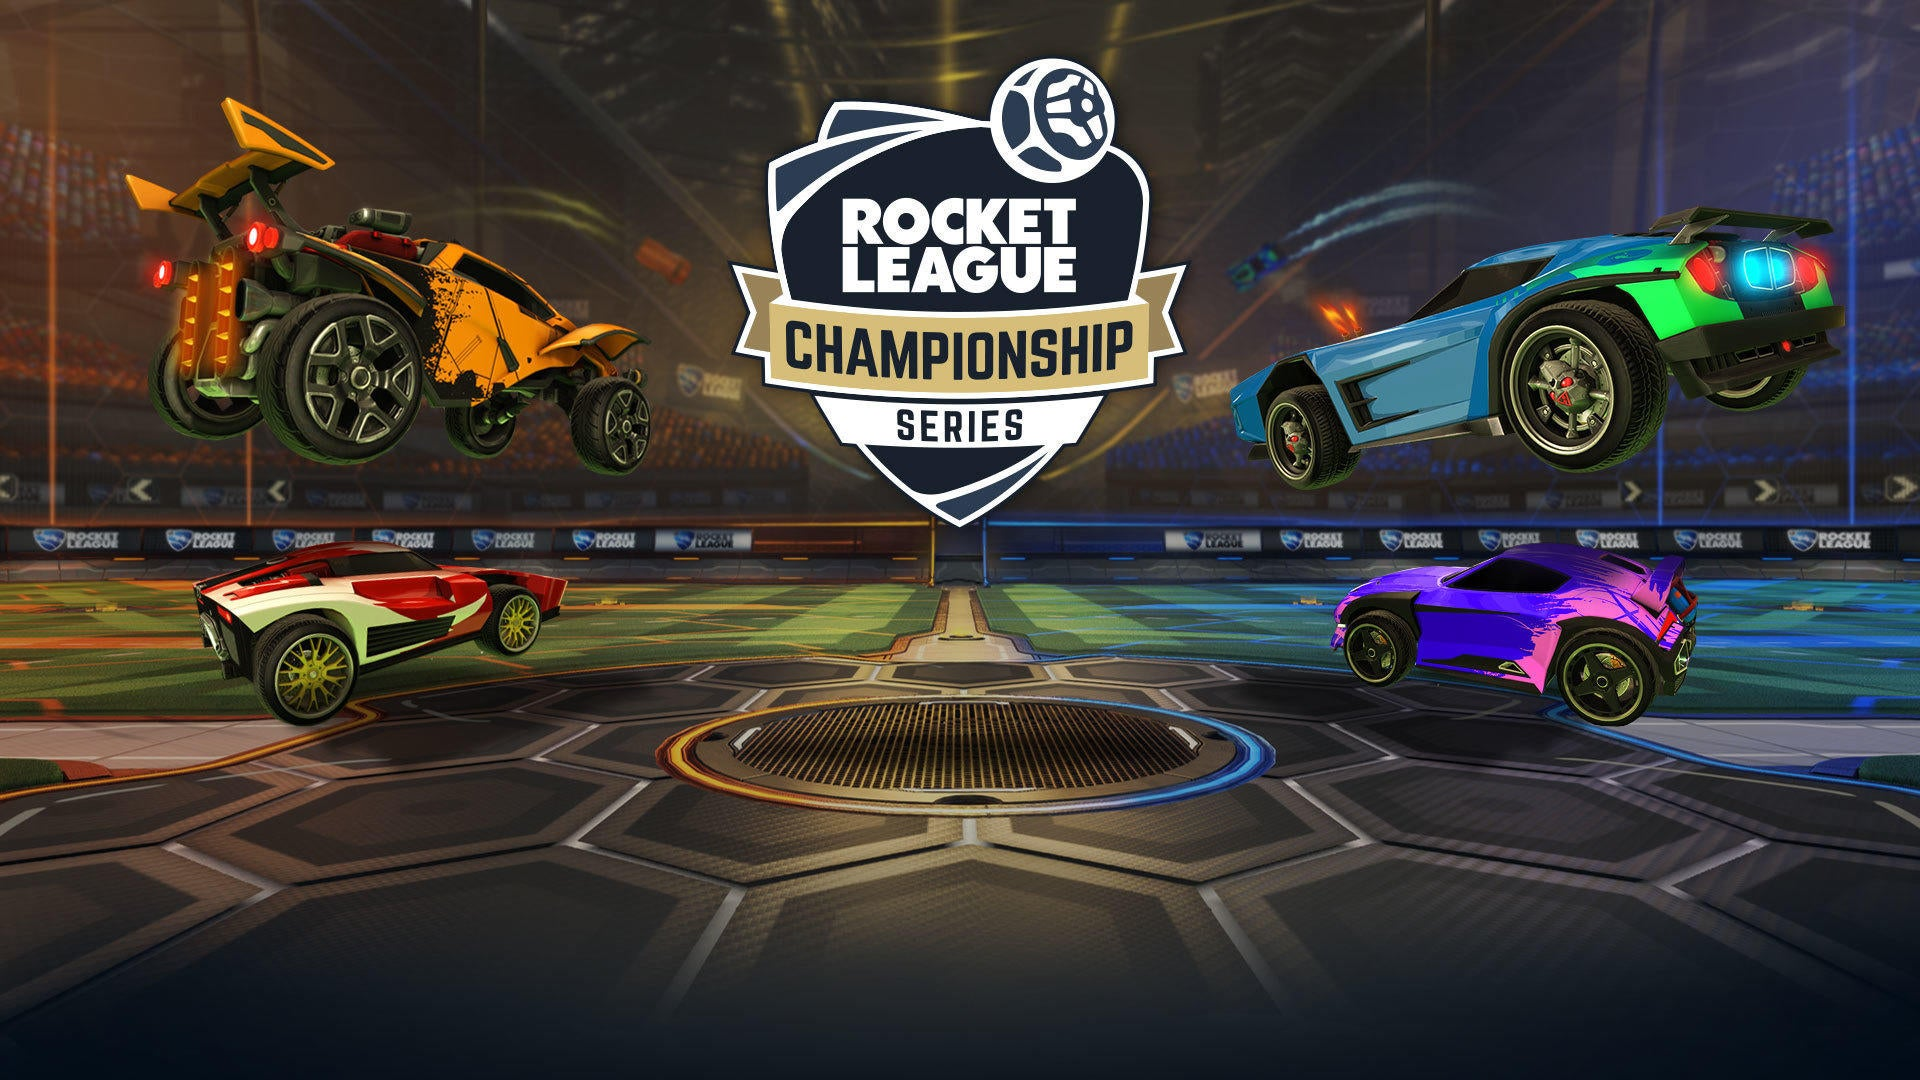 Introducing the Rocket League Championship Series Image